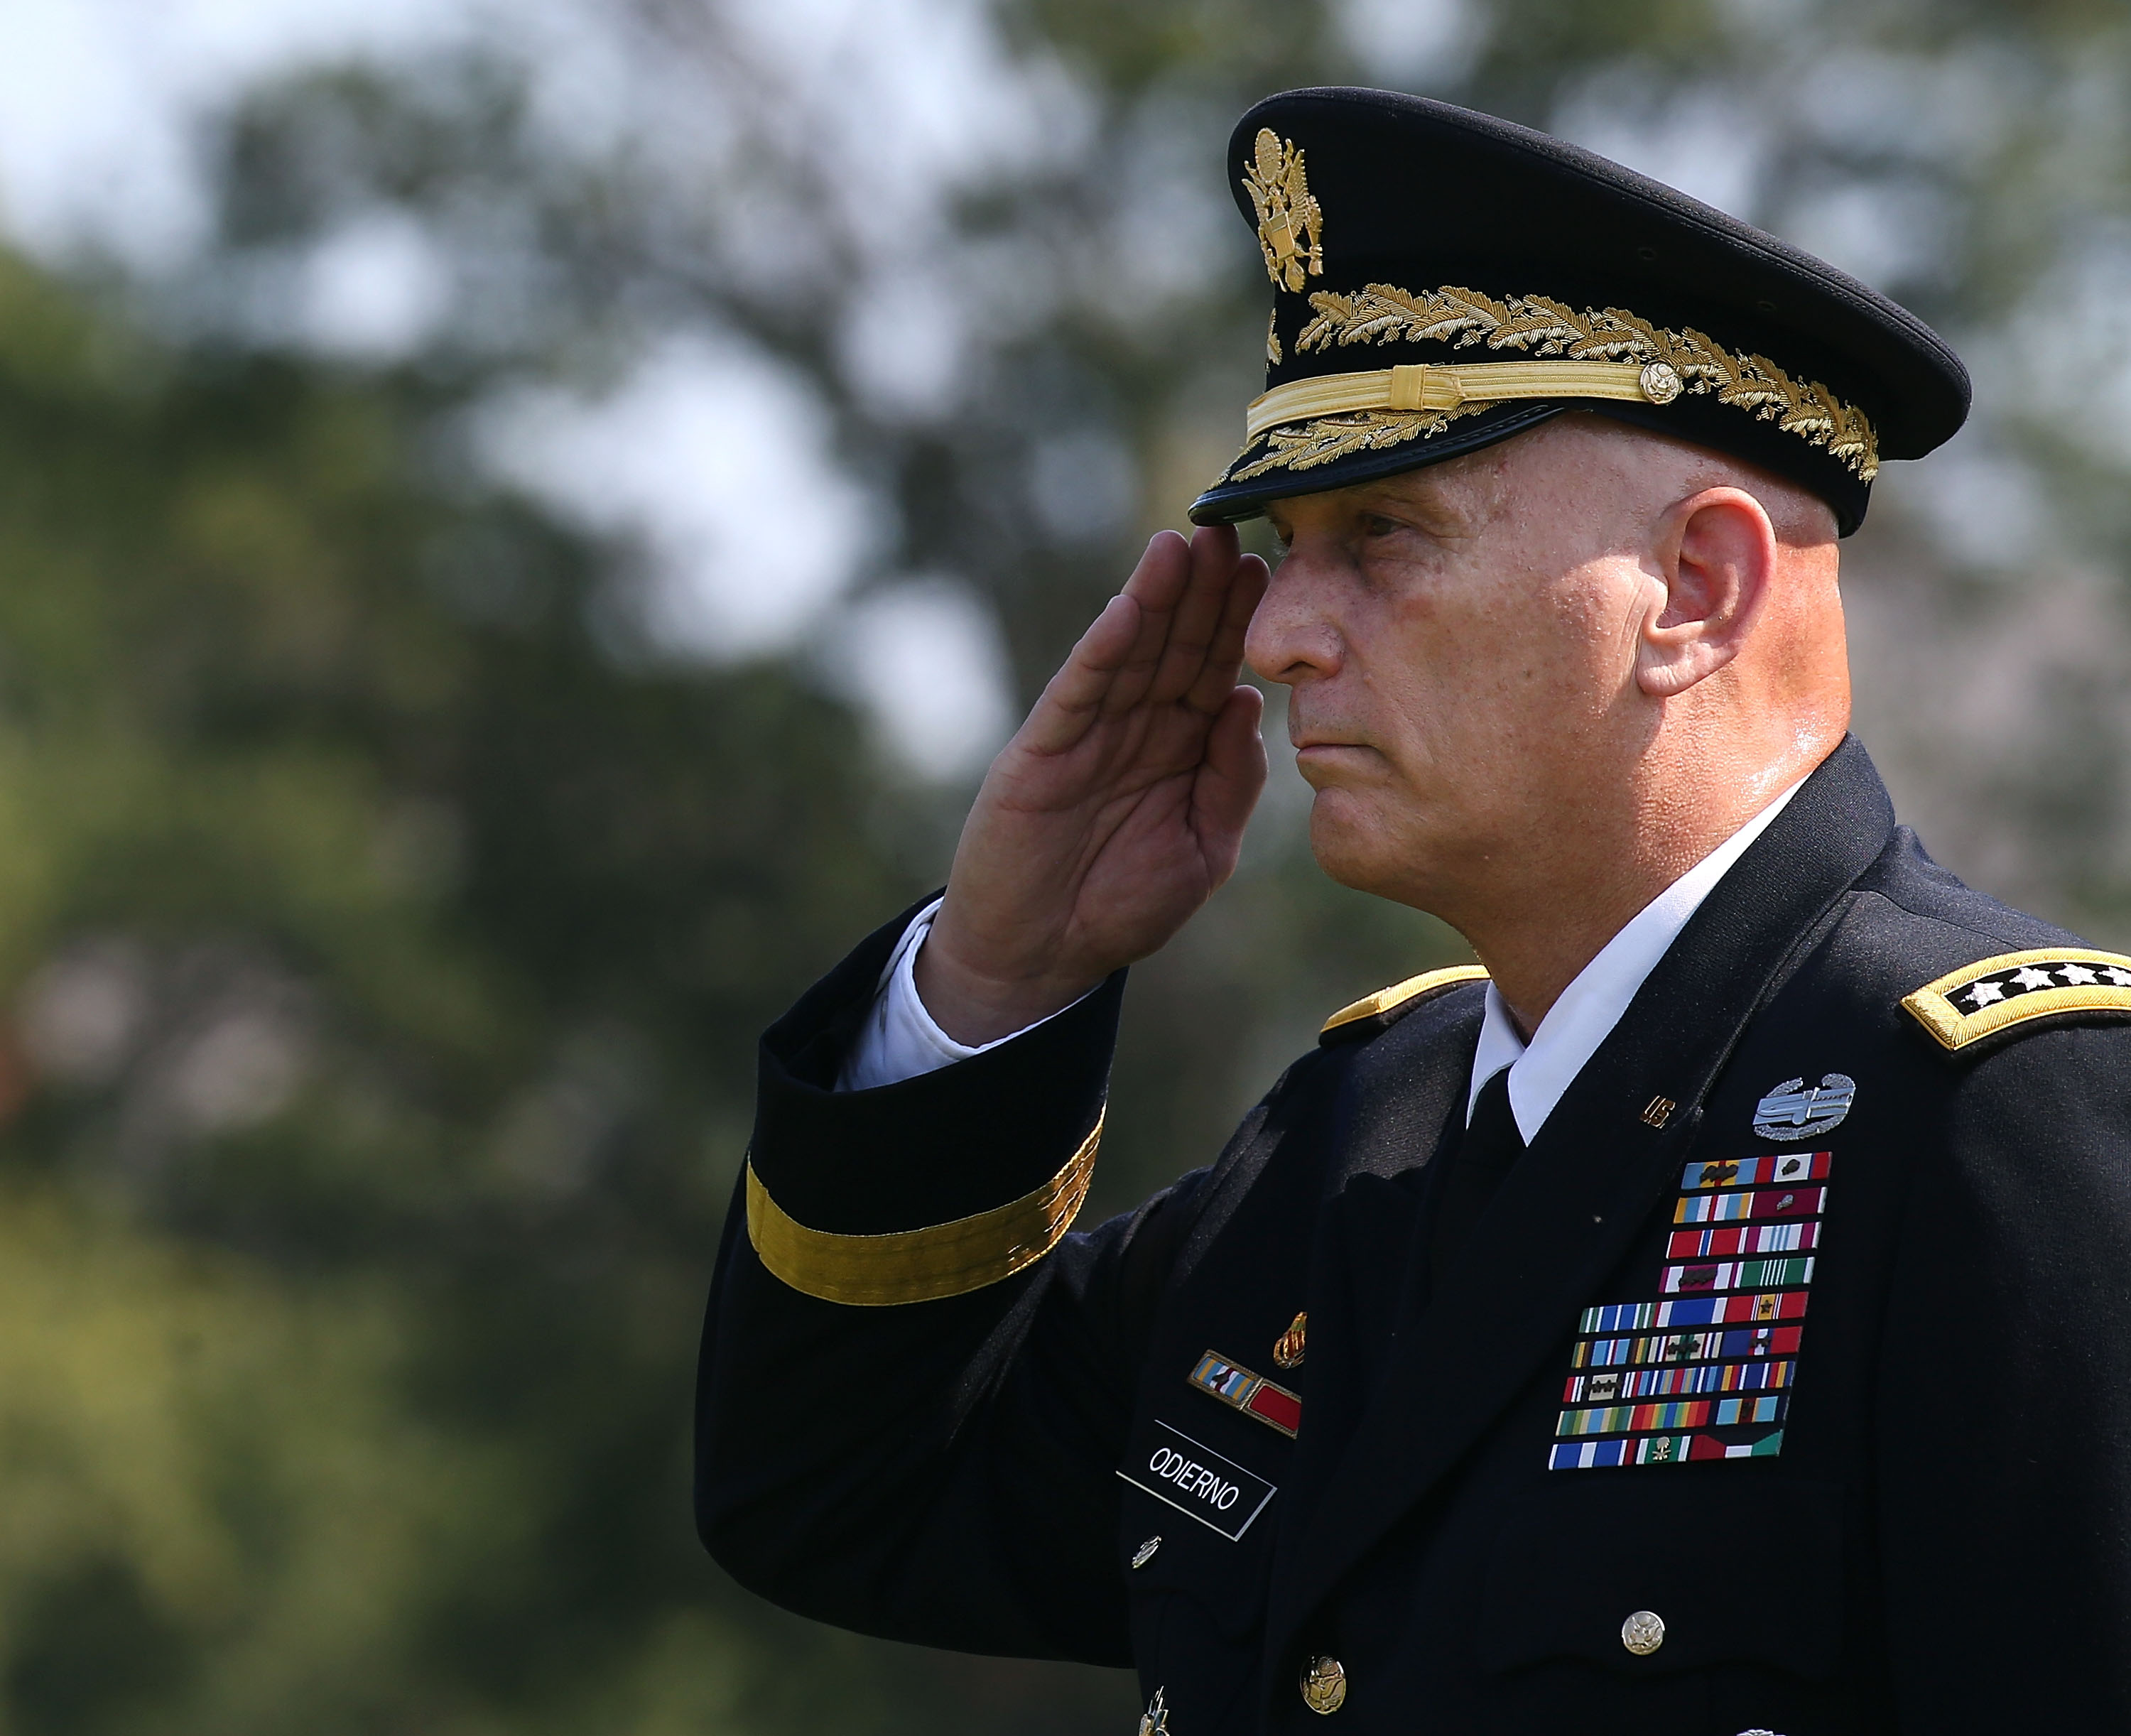 Gen. Ray Odierno salutes during his retirement ceremony at Joint Base Myer-Henderson, August 14, 2015 in Arlington, Virginia. (Photo by Mark Wilson/Getty Images)